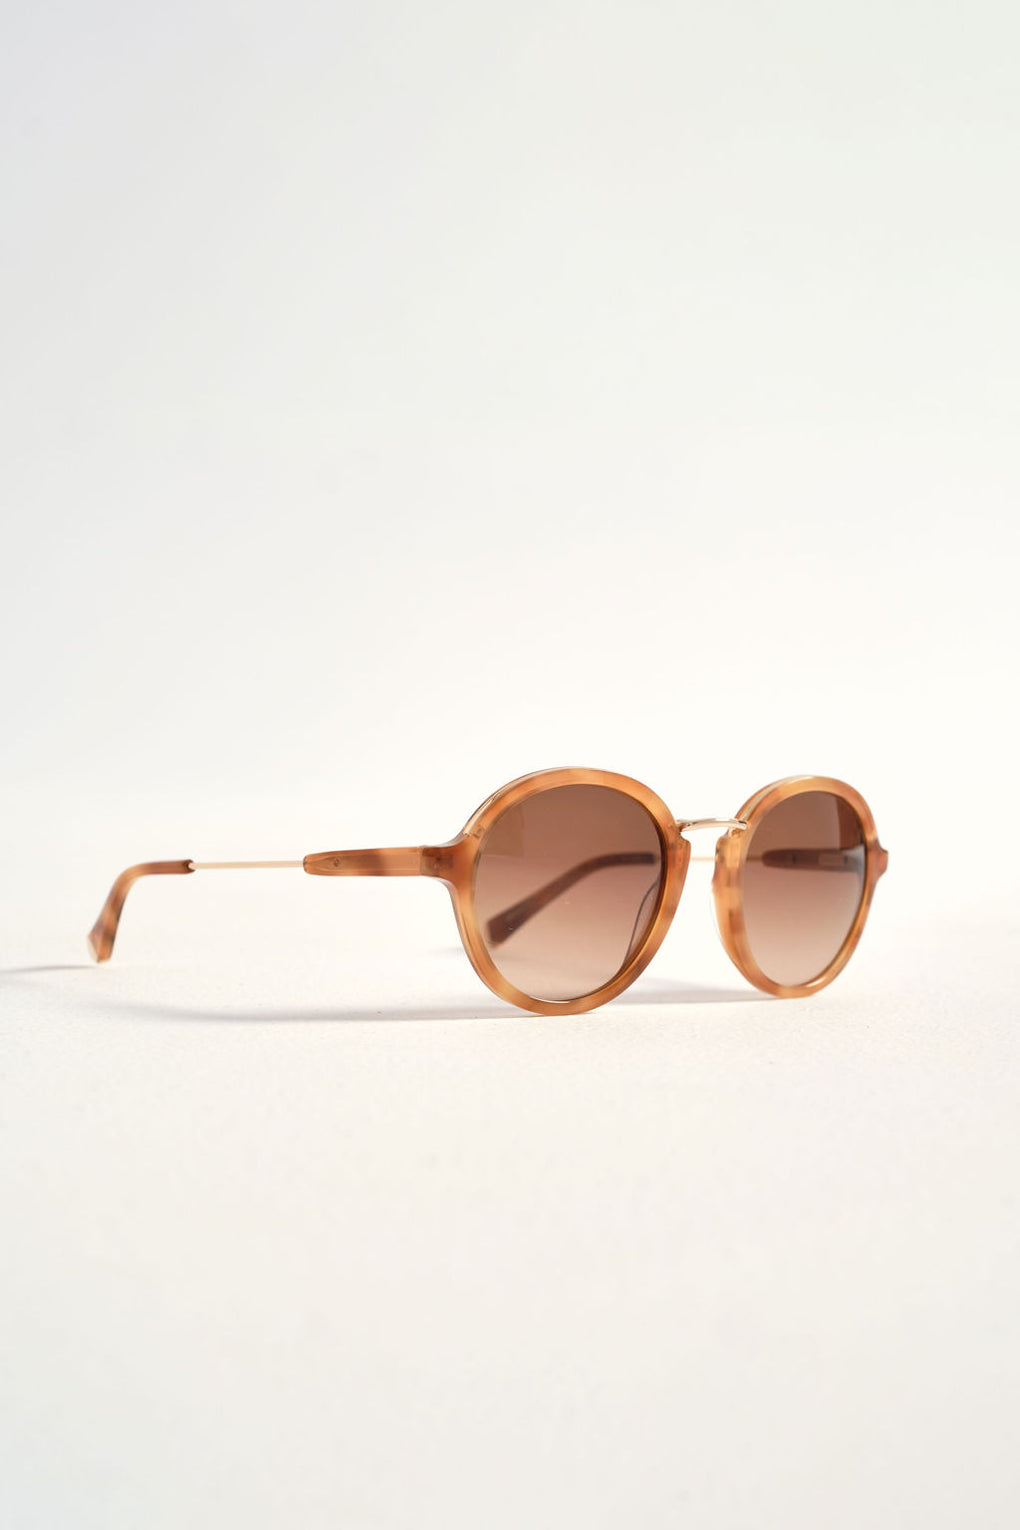 Fiona sunglasses-Kate Young-Tura sunglasses–Kate Young for Tura Sun–Idun-St. Paul